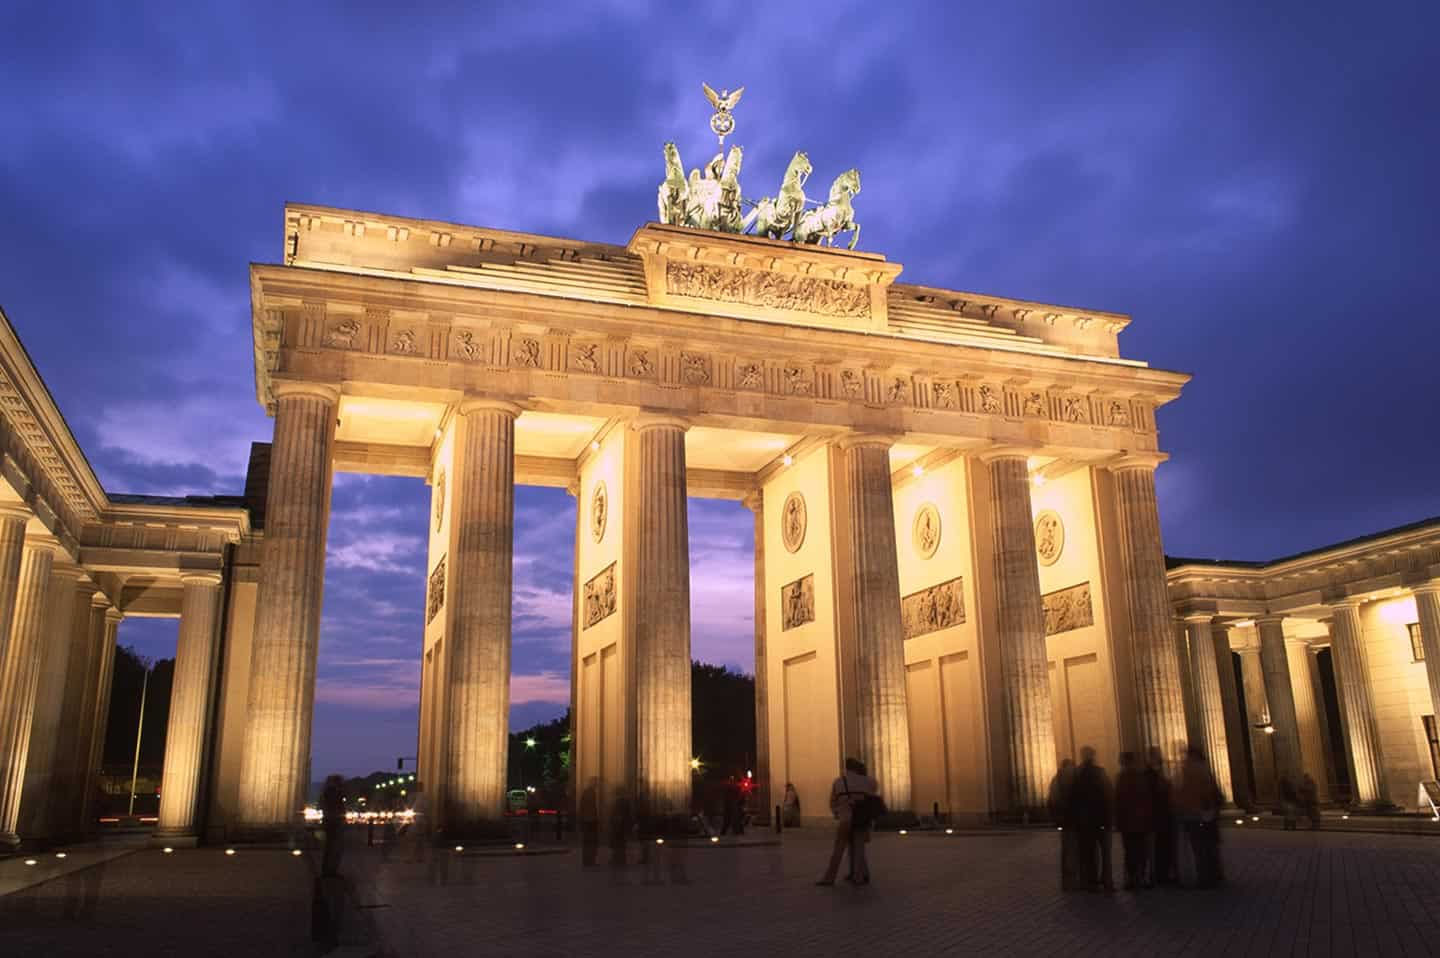 Image of the Brandenburg Gate in Berlin at night